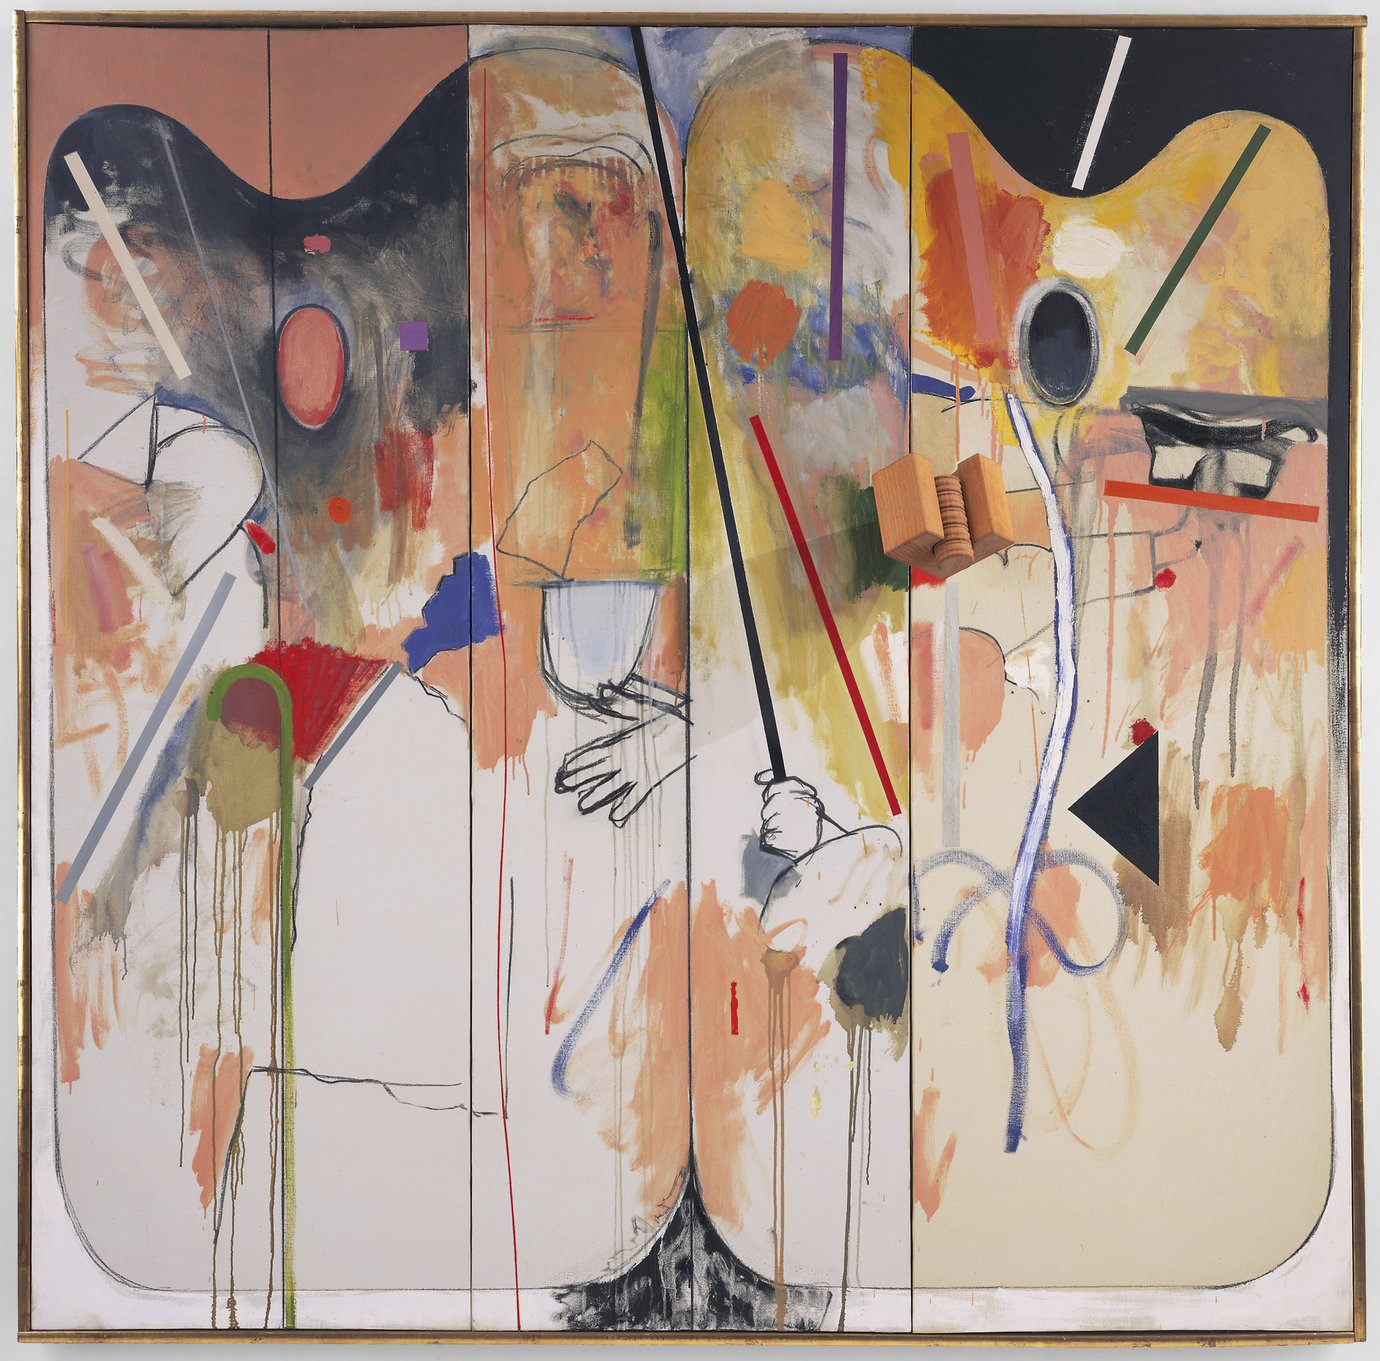 ", 1963. Oil on canvas and collage, 71-7/8"" x 72-3/8"" (182.6 cm x 183.8 cm)."